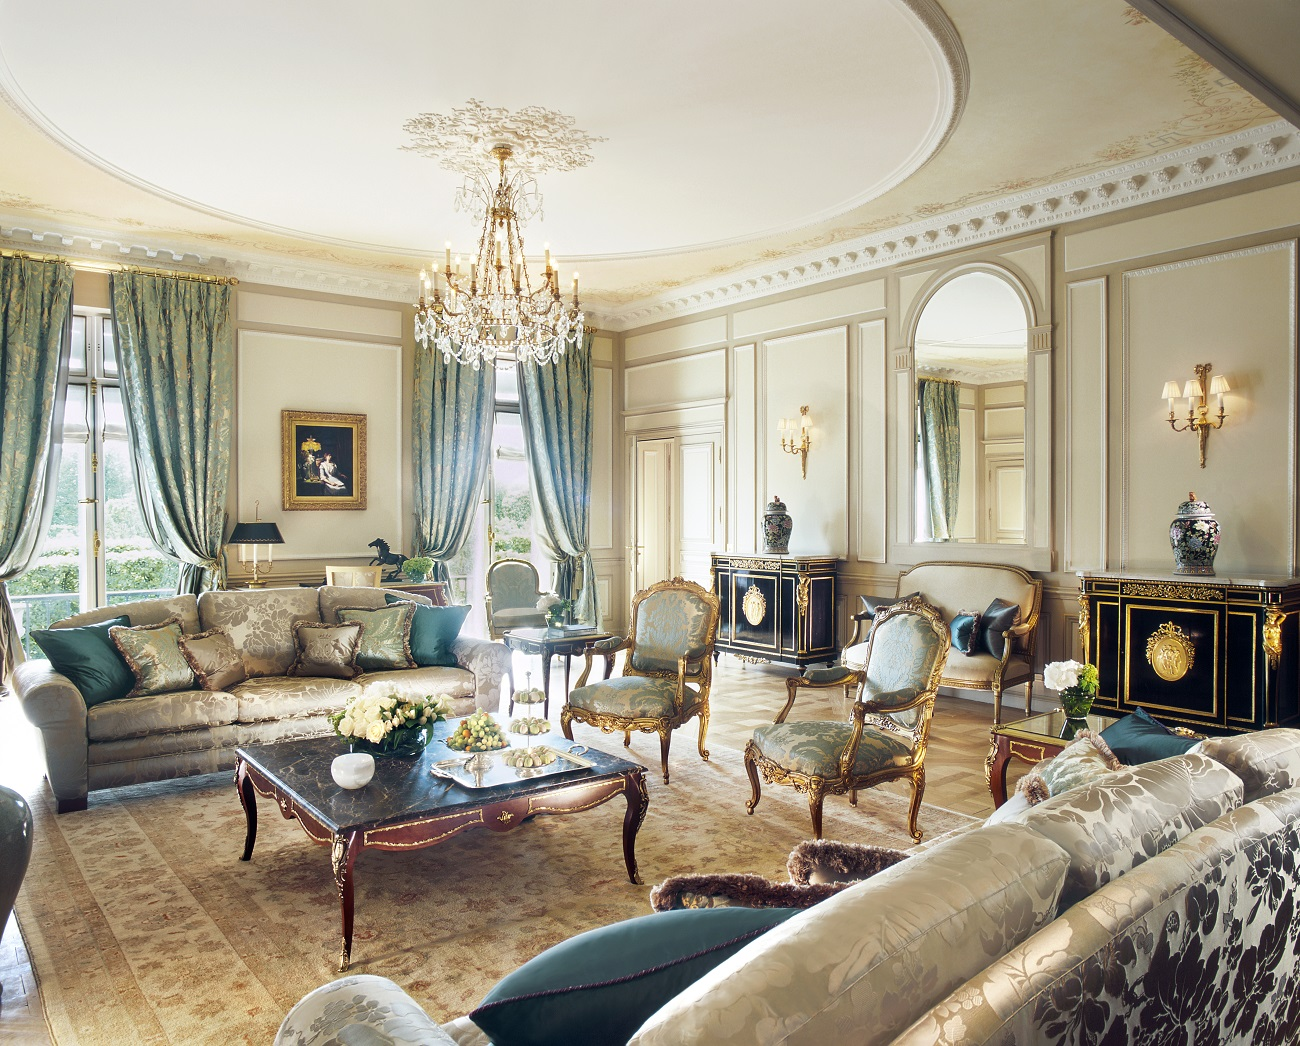 Presidential Suite at Le Meurice hotel